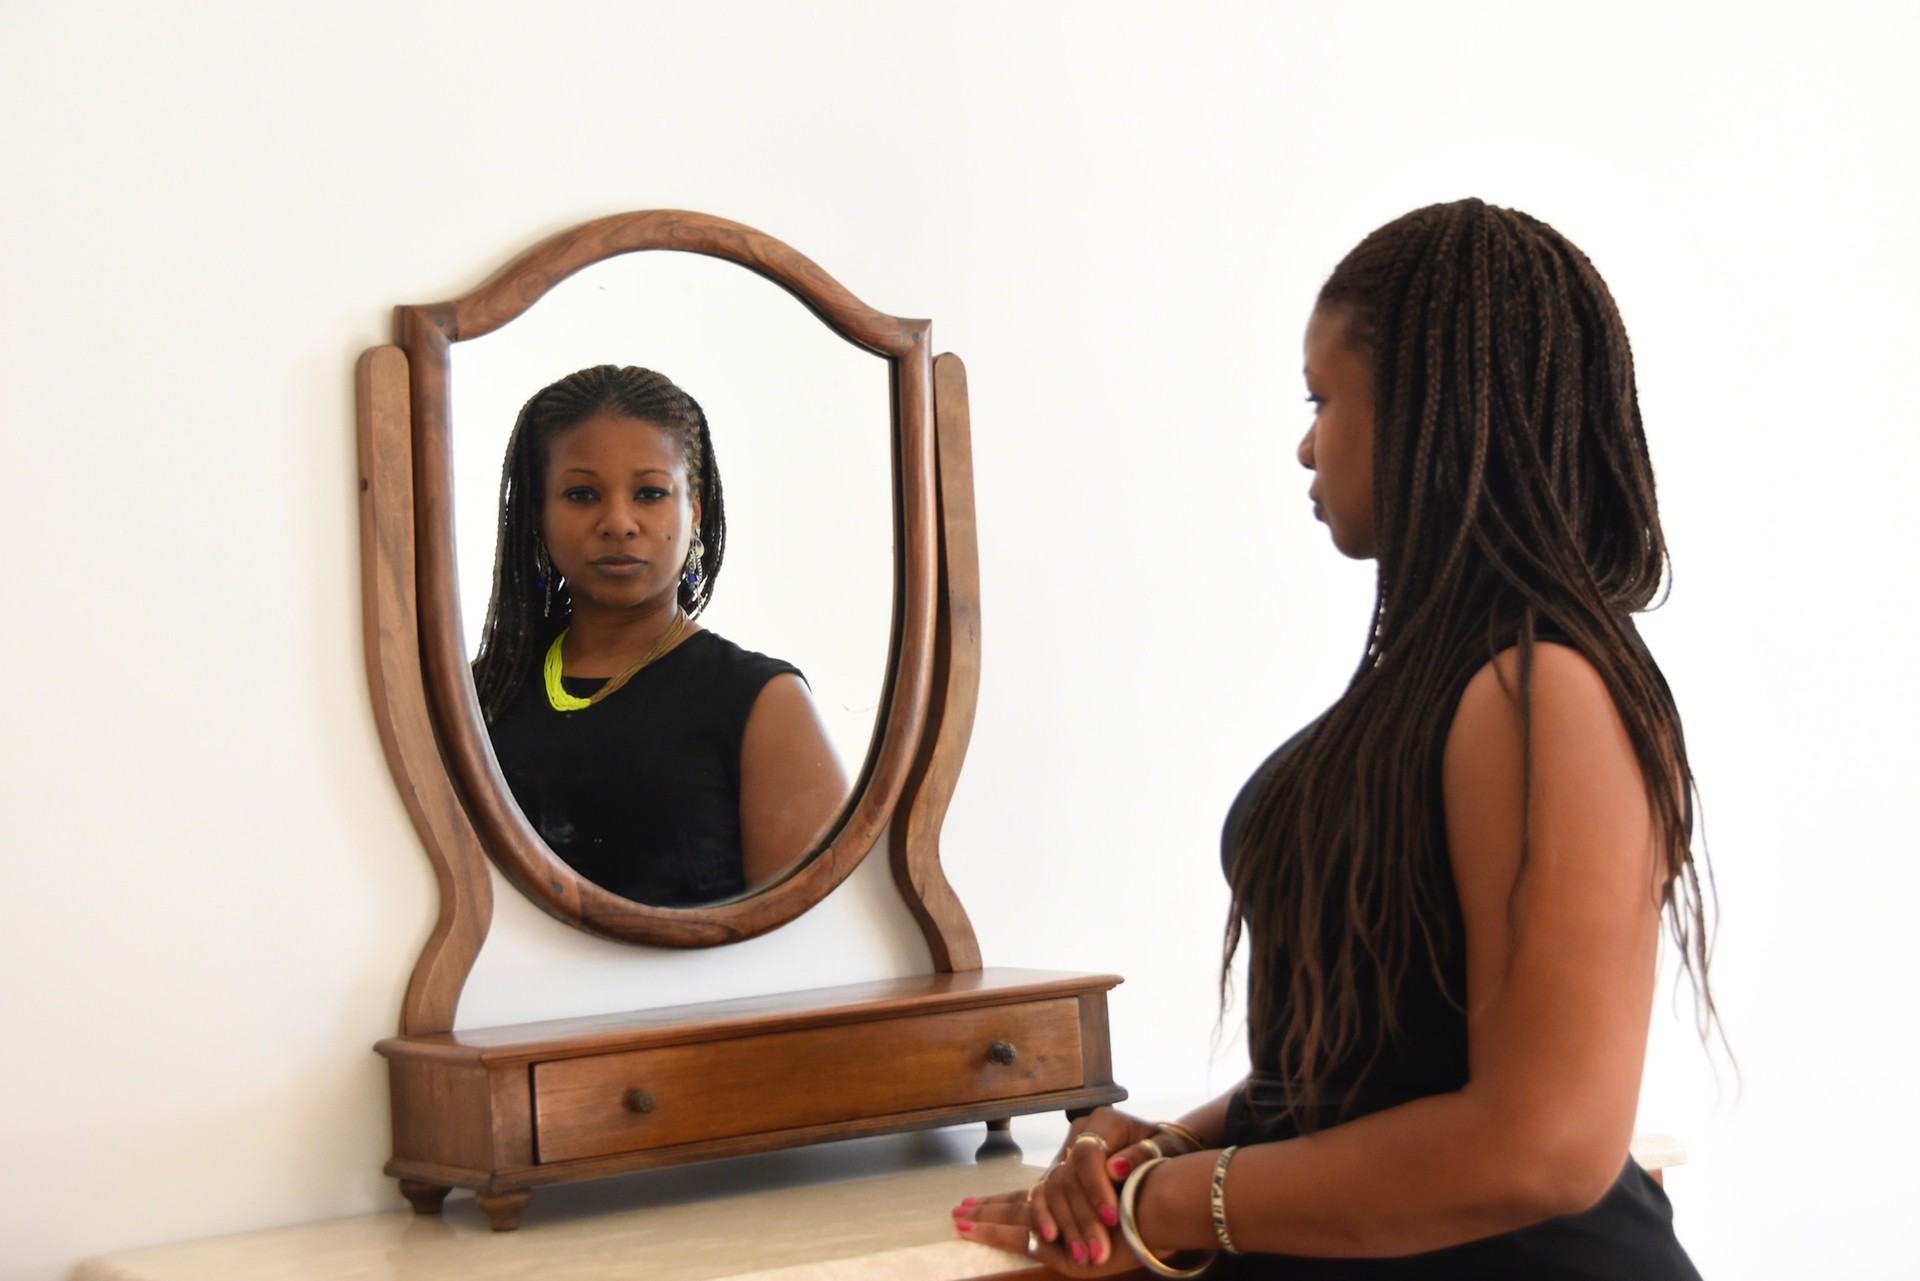 Mirror Work Whiteness Juxtaposed by Amber Robles-Gordon